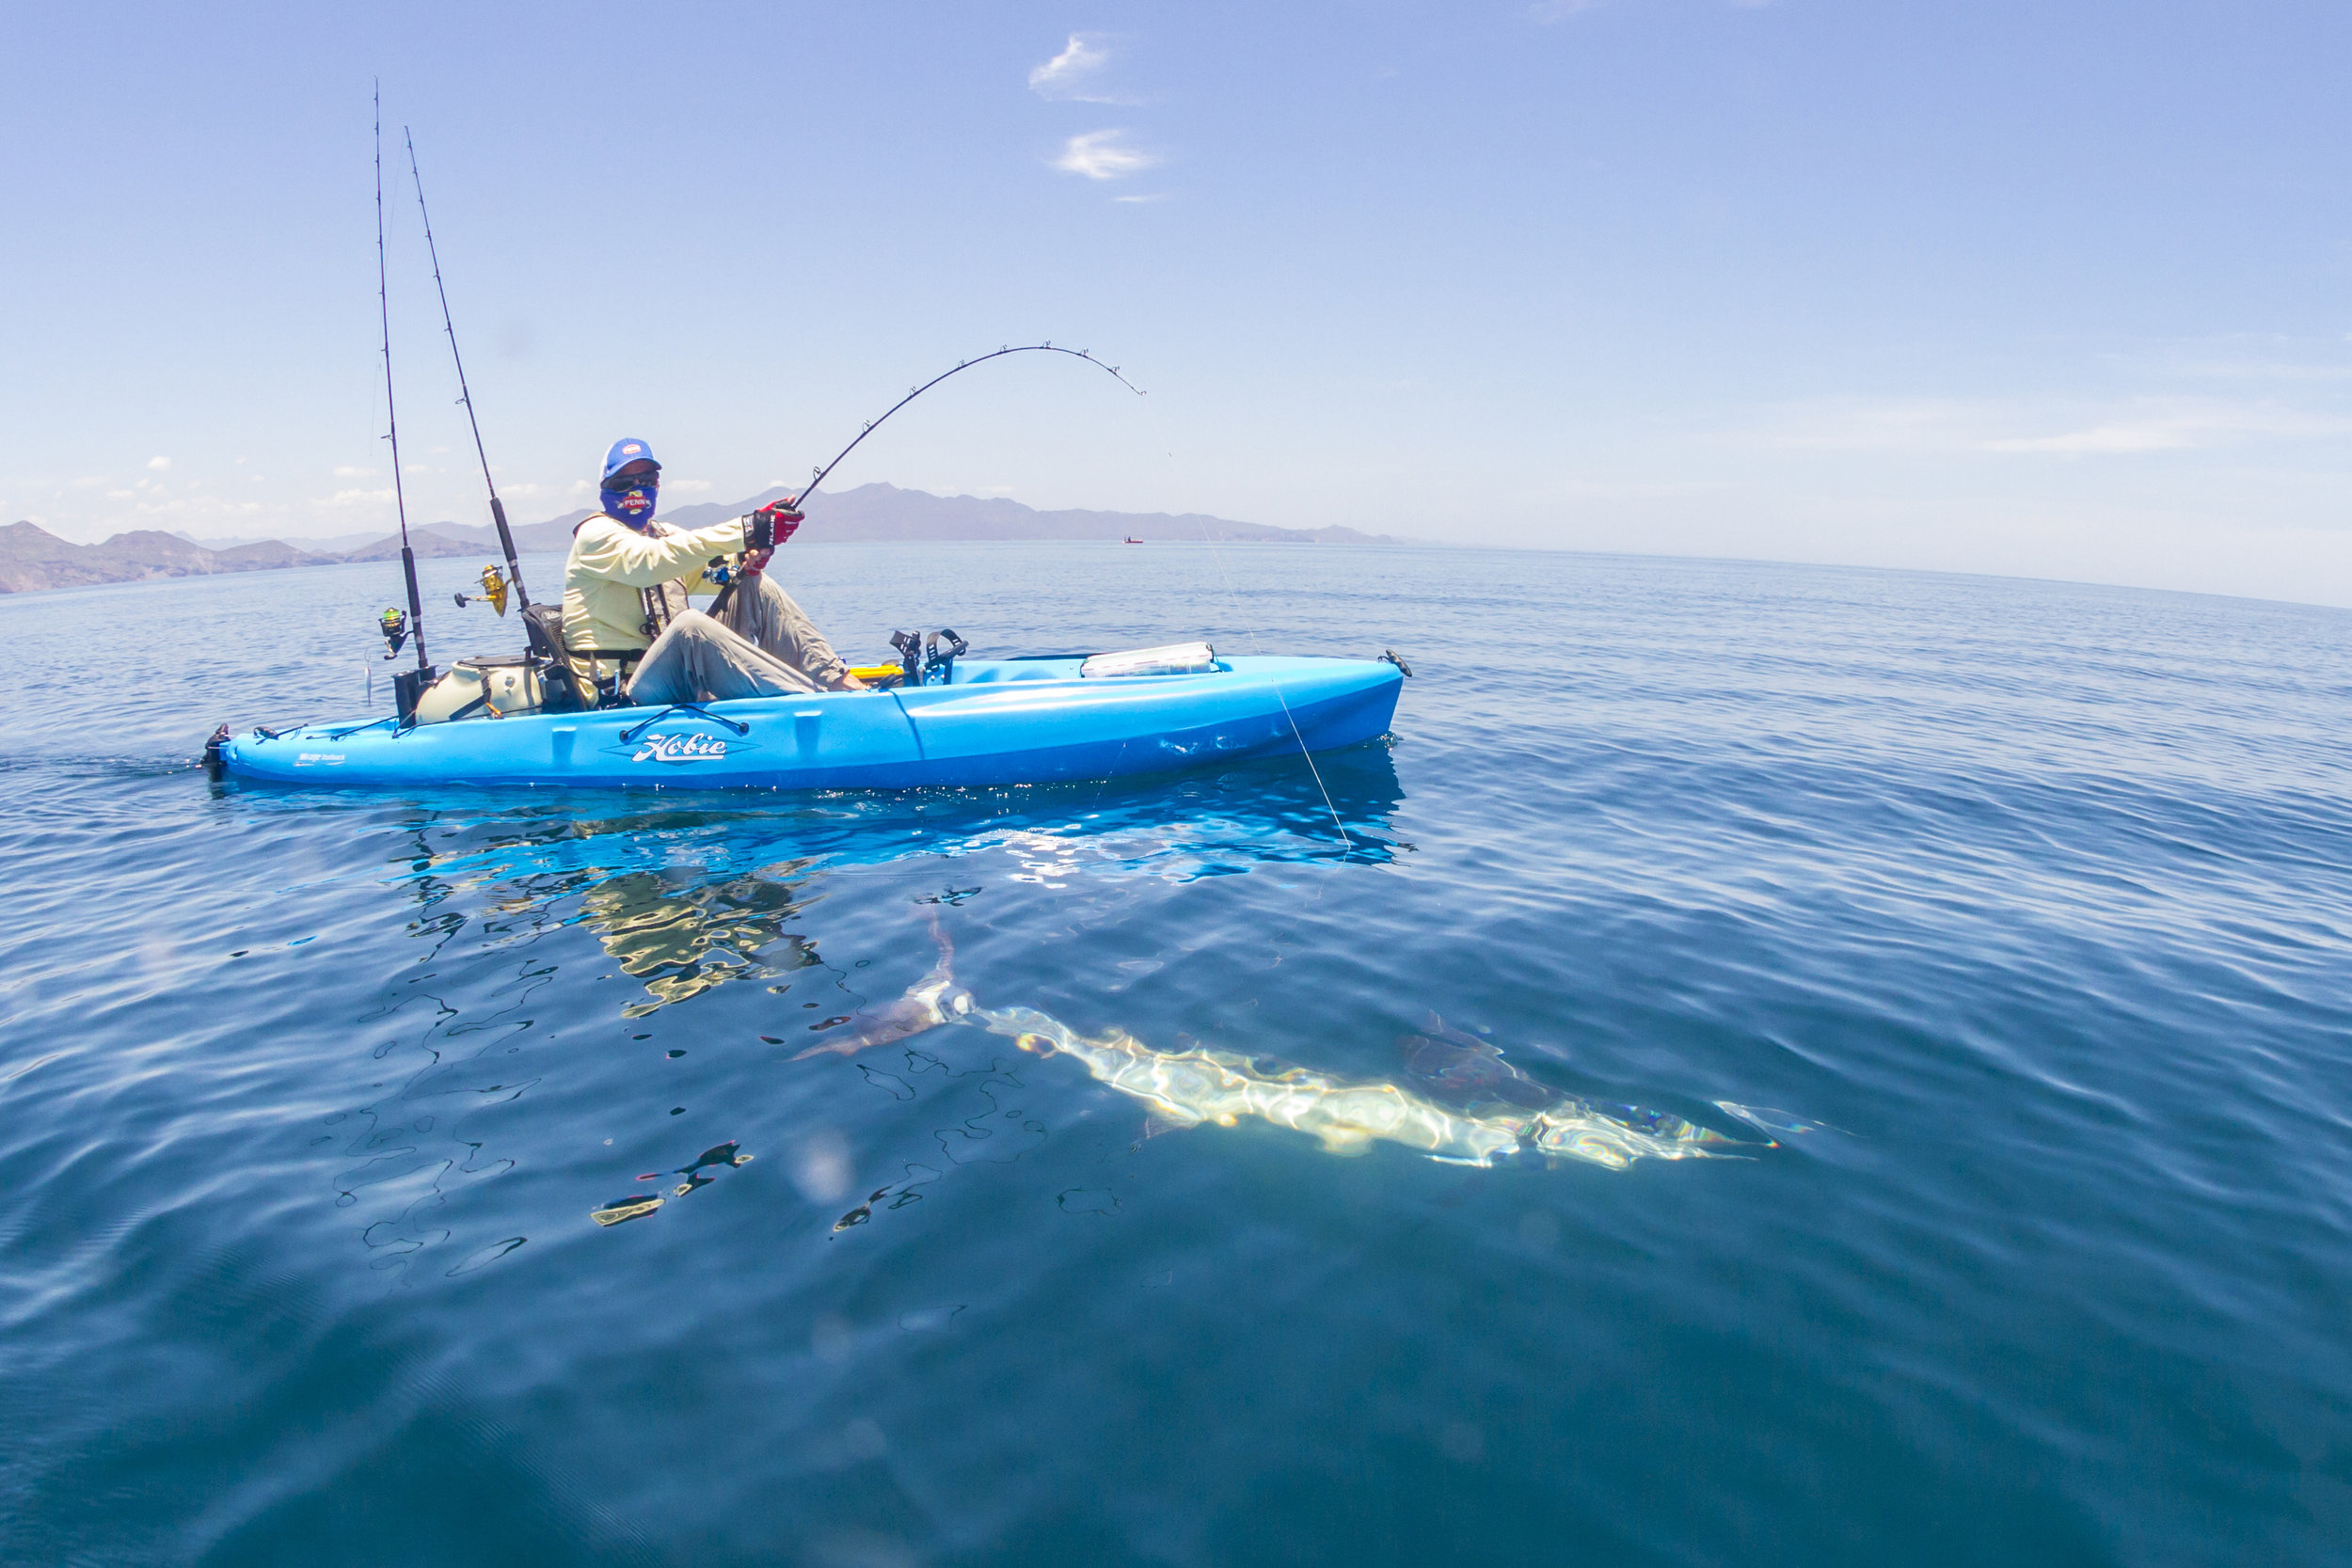 Outback_action_fishing_marlin_ocean_blue_tow_4477_full.jpg